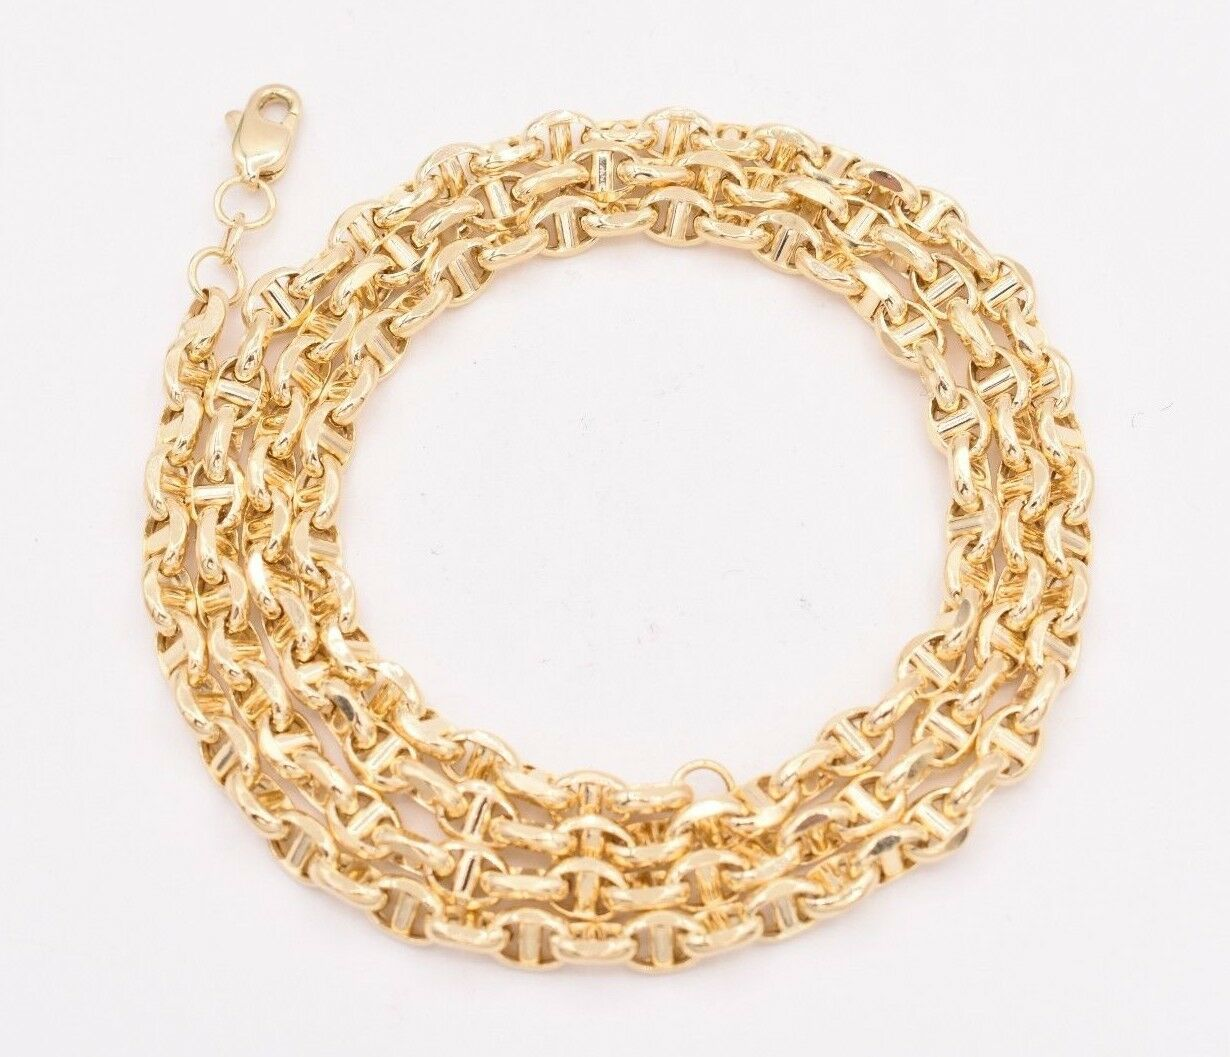 6 7 10, 18 20 or 24 inch 14K Yellow Gold 4.7mm Shiny Puffed Mariner Chain Necklace or Bracelet Bangle for Pendants and Charms with Lobster-Claw Clasp